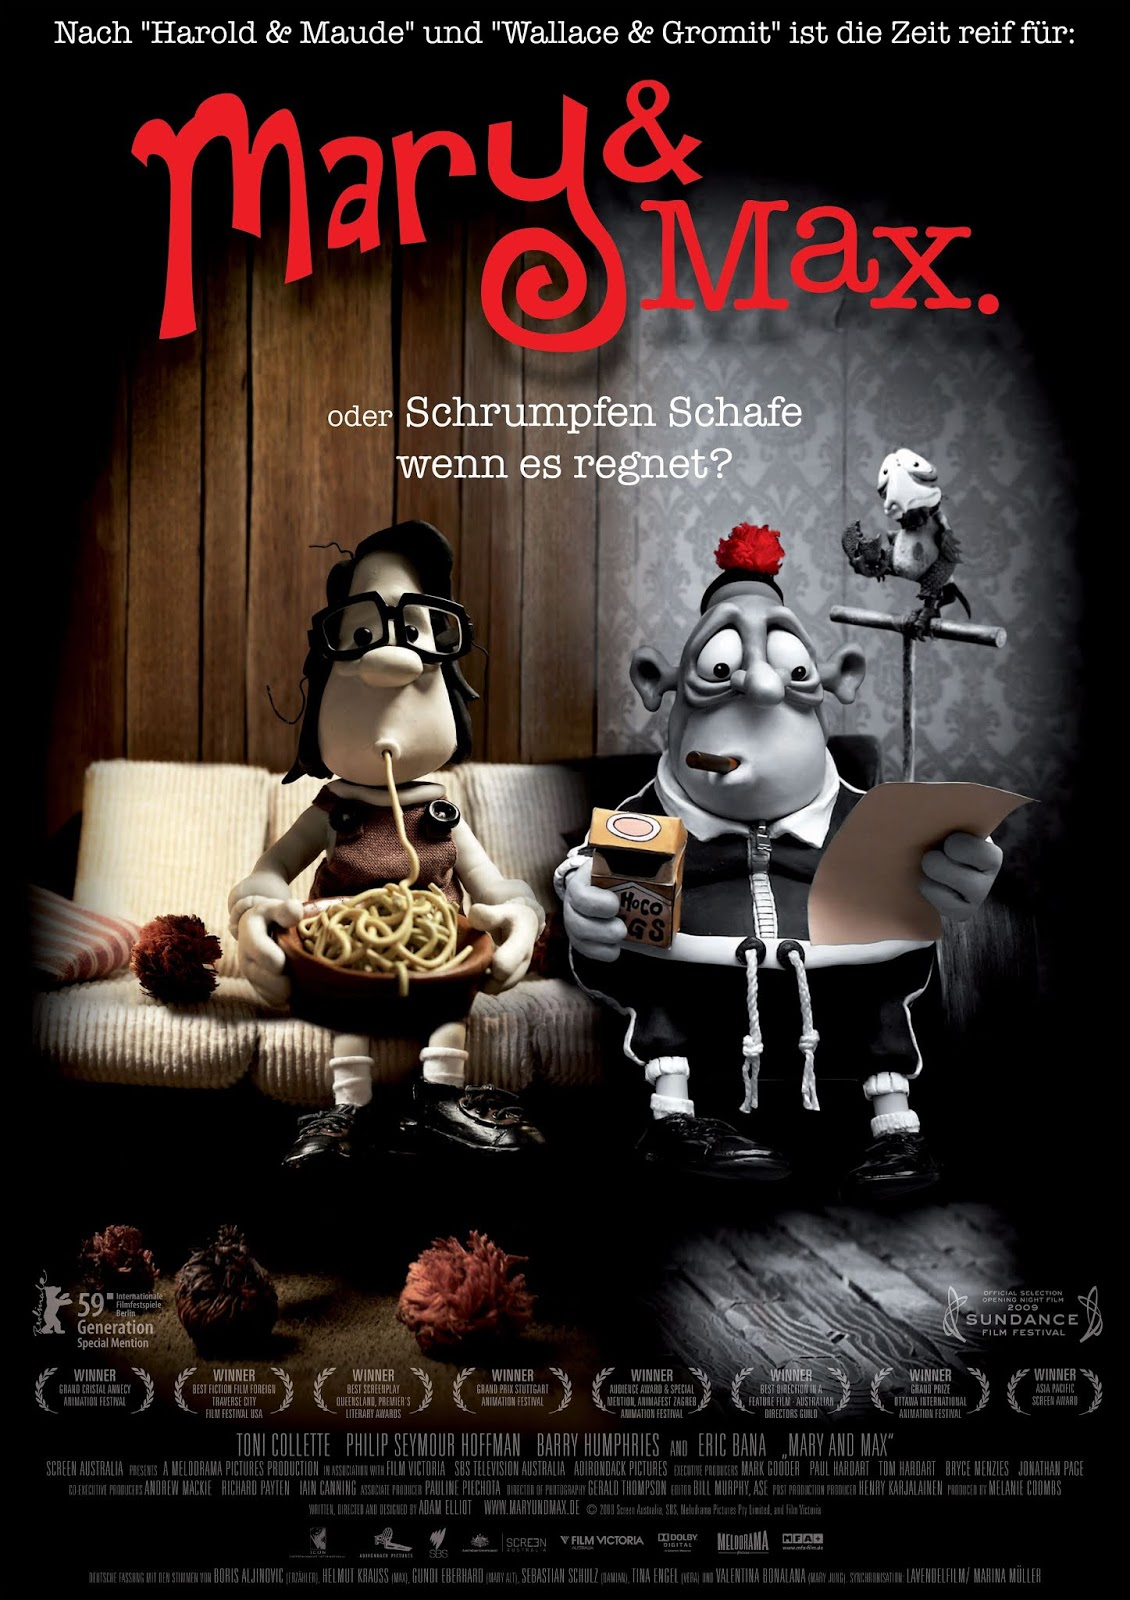 Noah Greenhalgh Computer Animation Arts Uca Film Review Mary And Max 2009